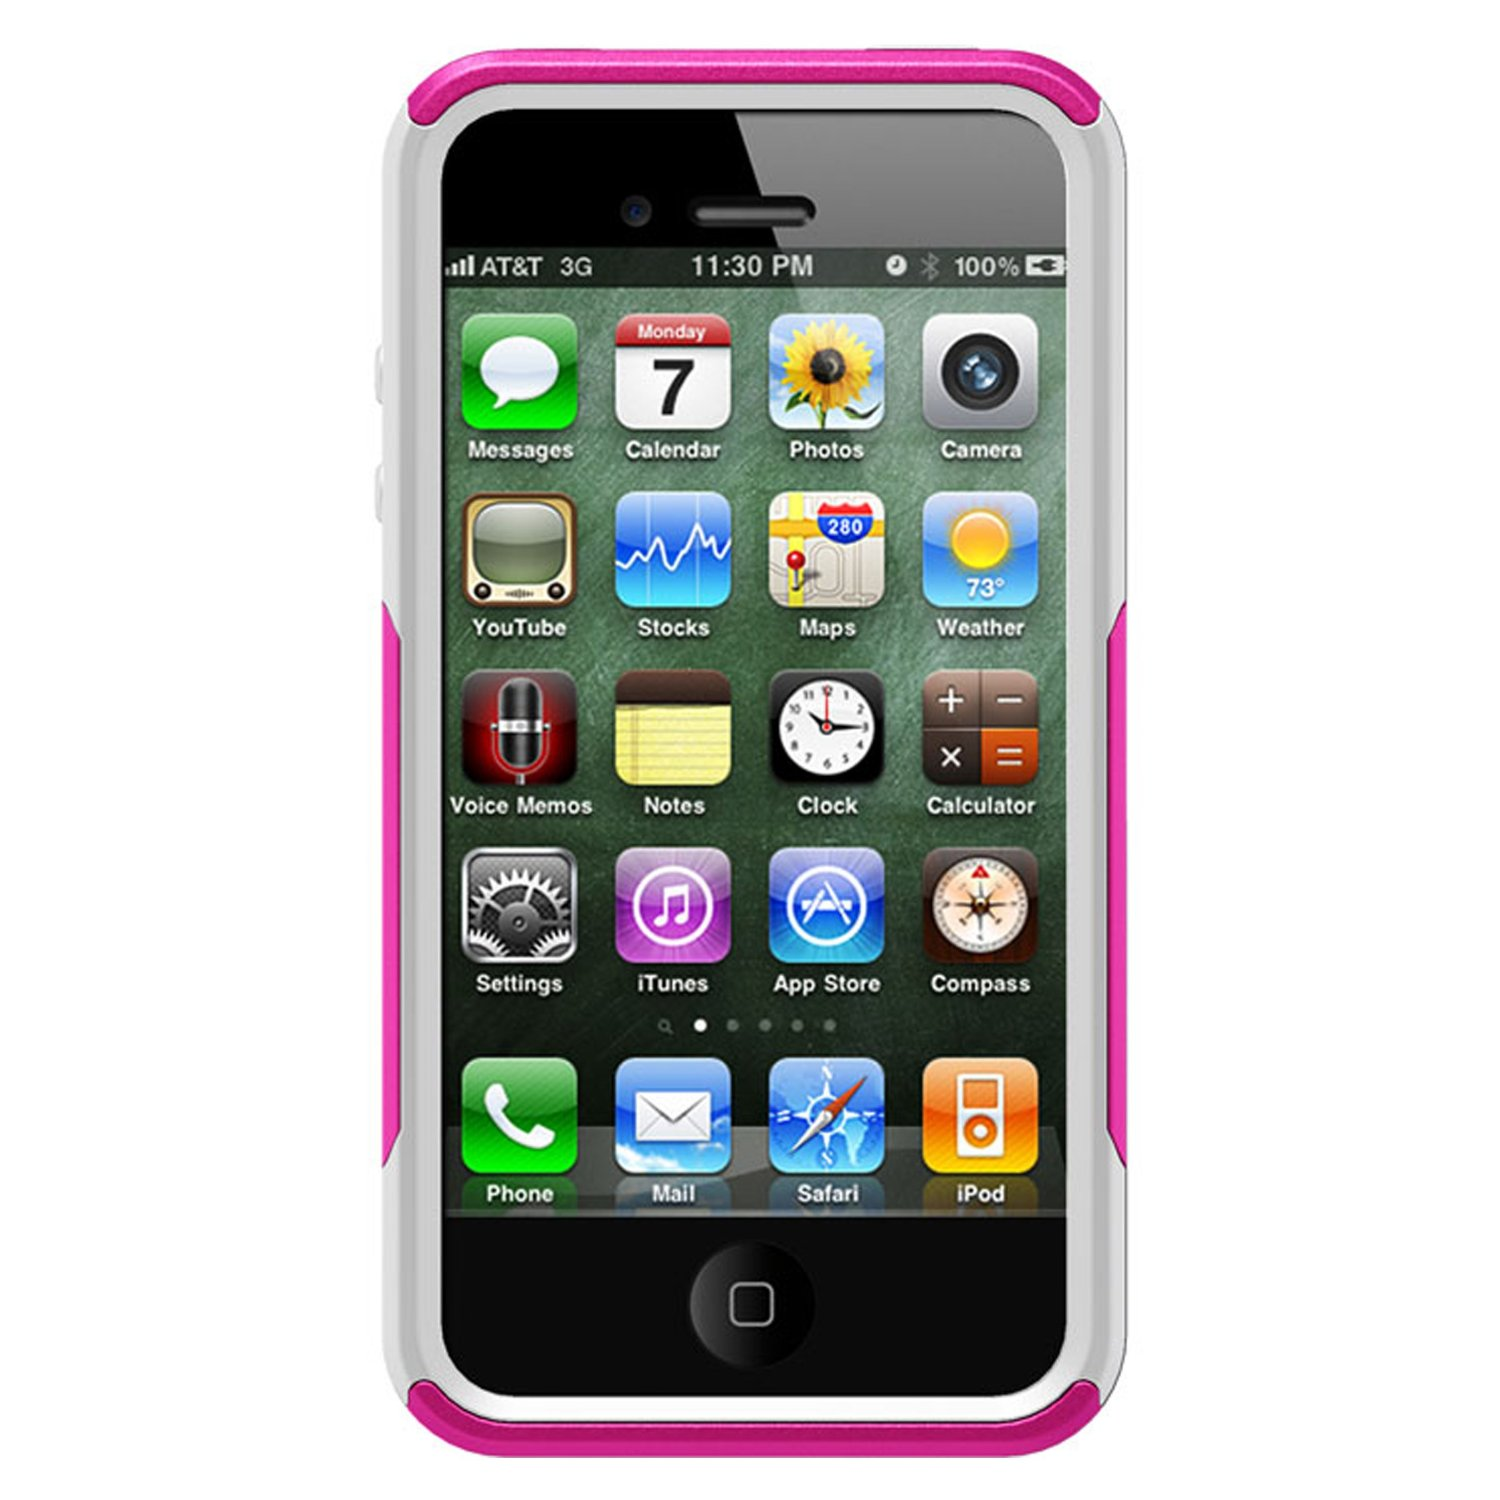 Otter Box Commuter Series Rugged Protective Case For iPhone 4 & 4S